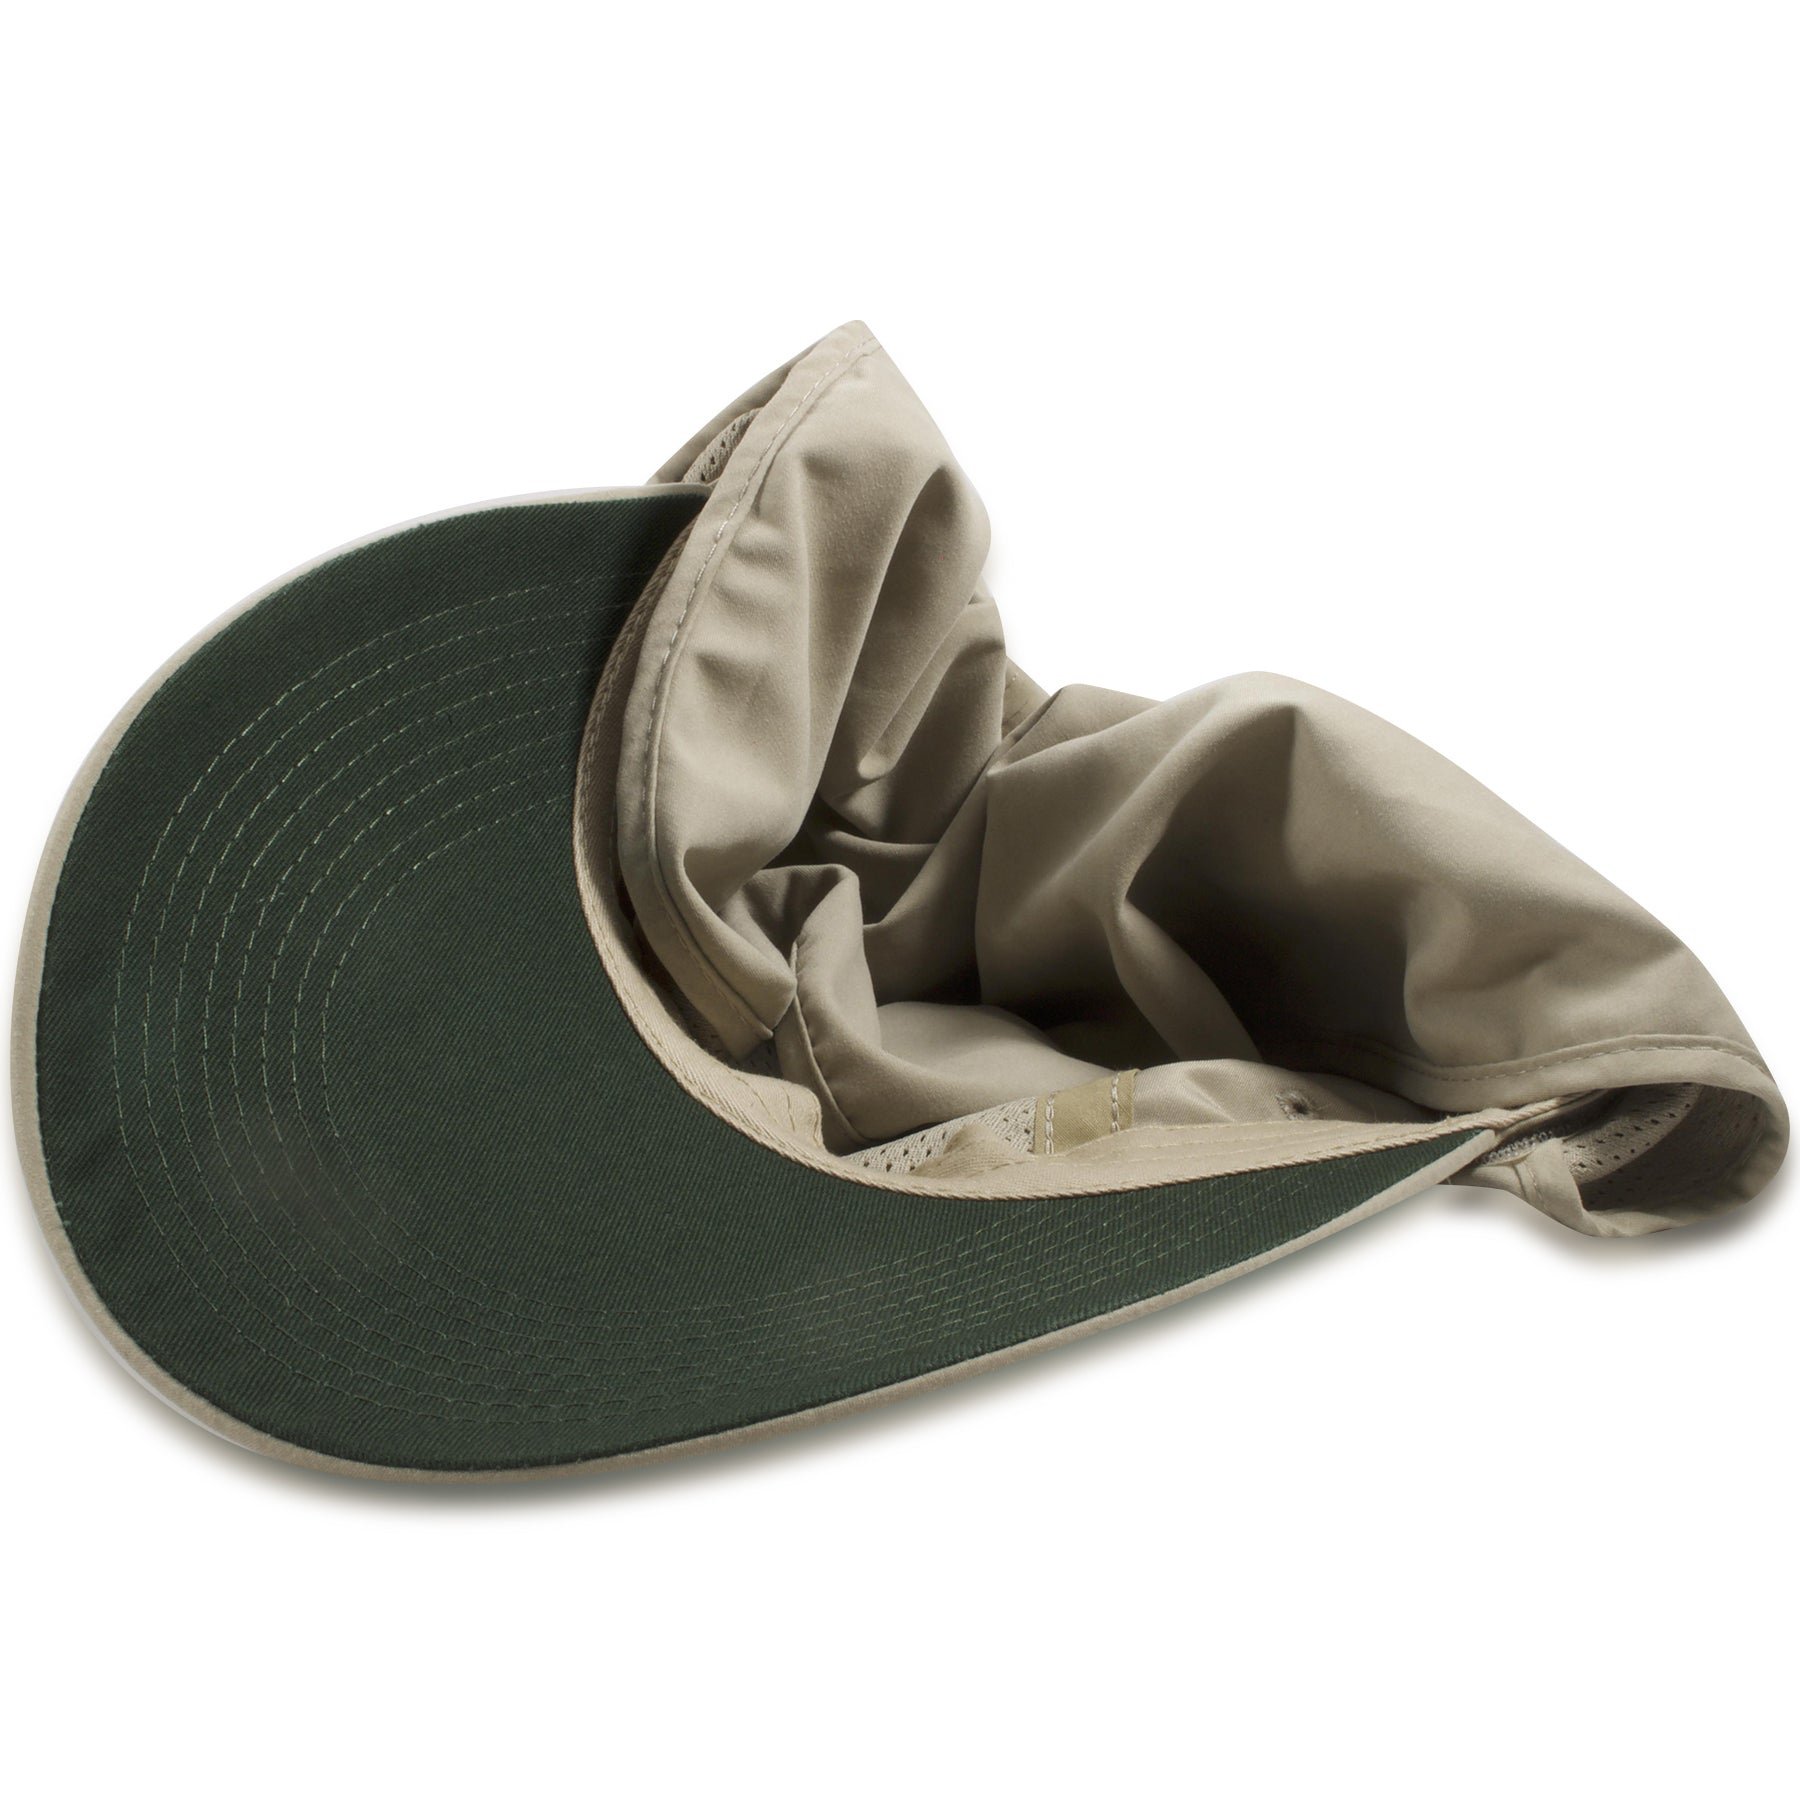 f1d2e9f1ac13a Dorfman Pacific Khaki Big Brim Fishing Hat with Removable Neck Flap ...